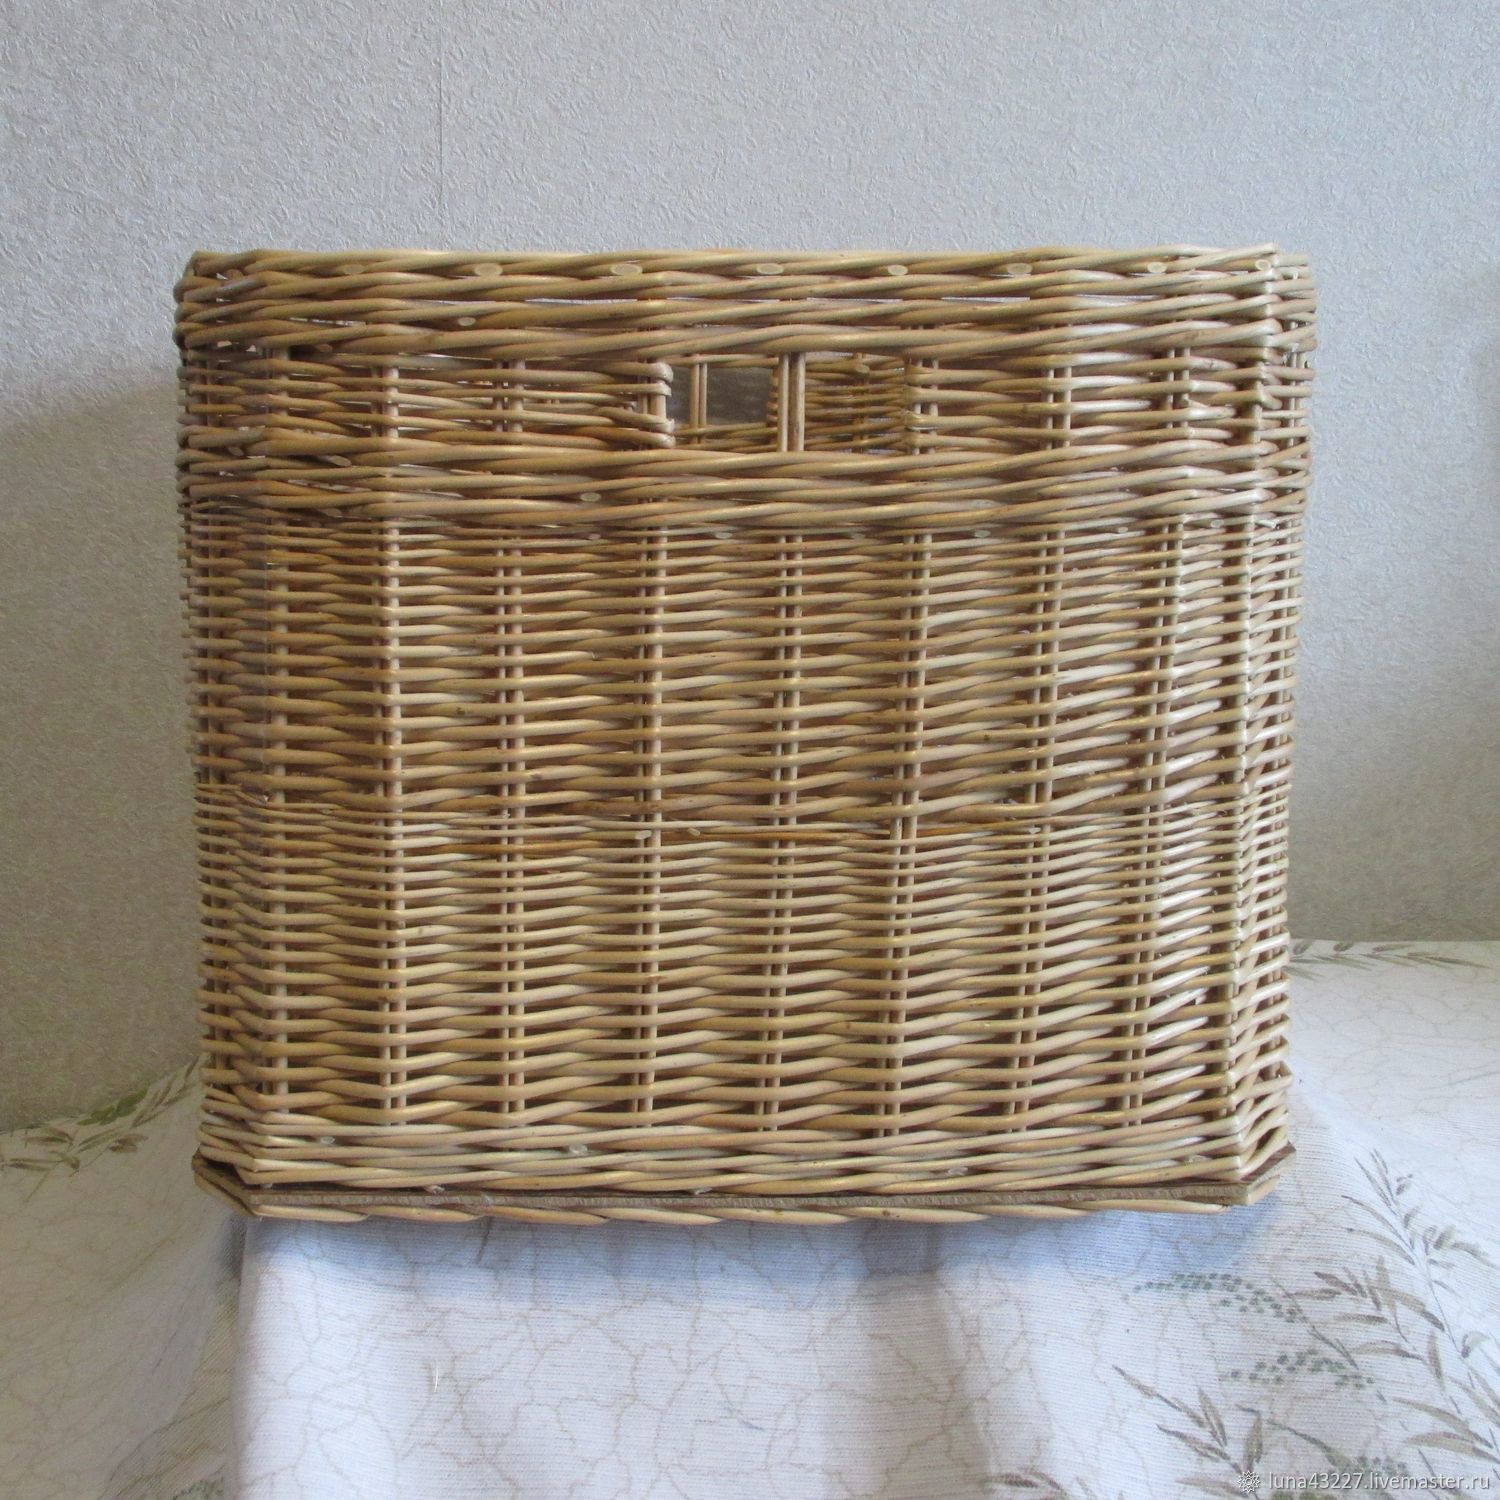 The Wicker Basket For Linen Toys From Willow Vines Shop Online On